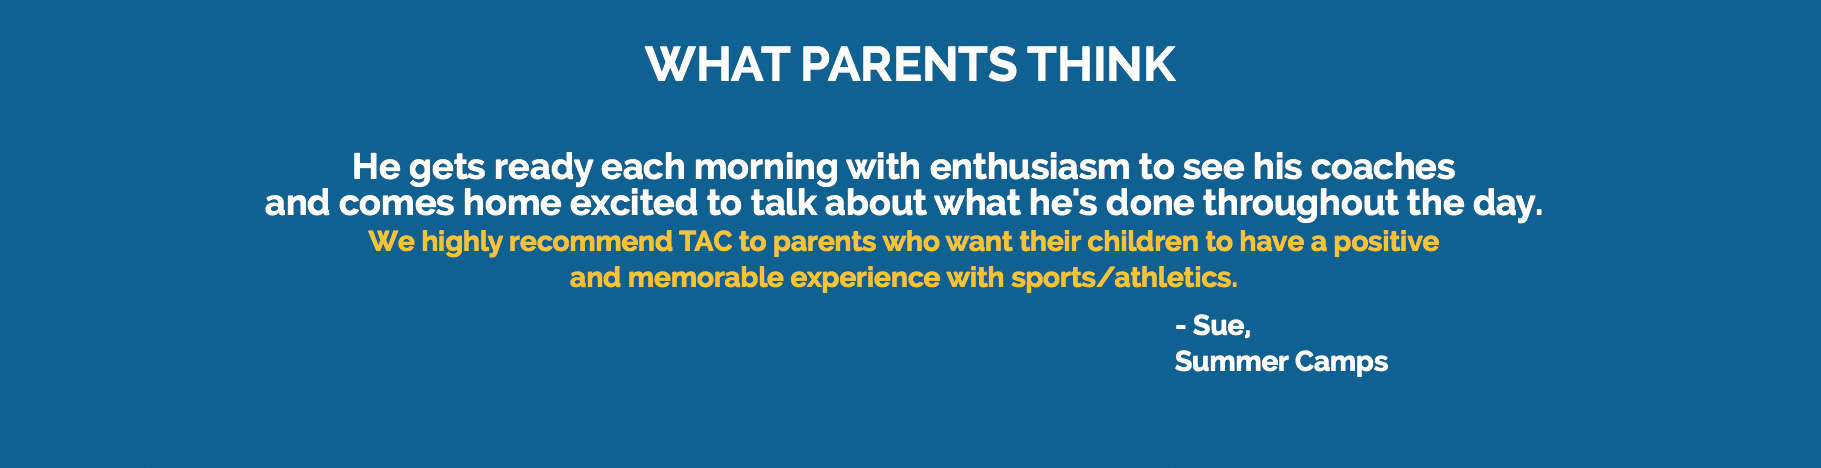 Testimonial: We highly recommend TAC to parents who want their children to have a positive and memorable experience with sports/athletics.